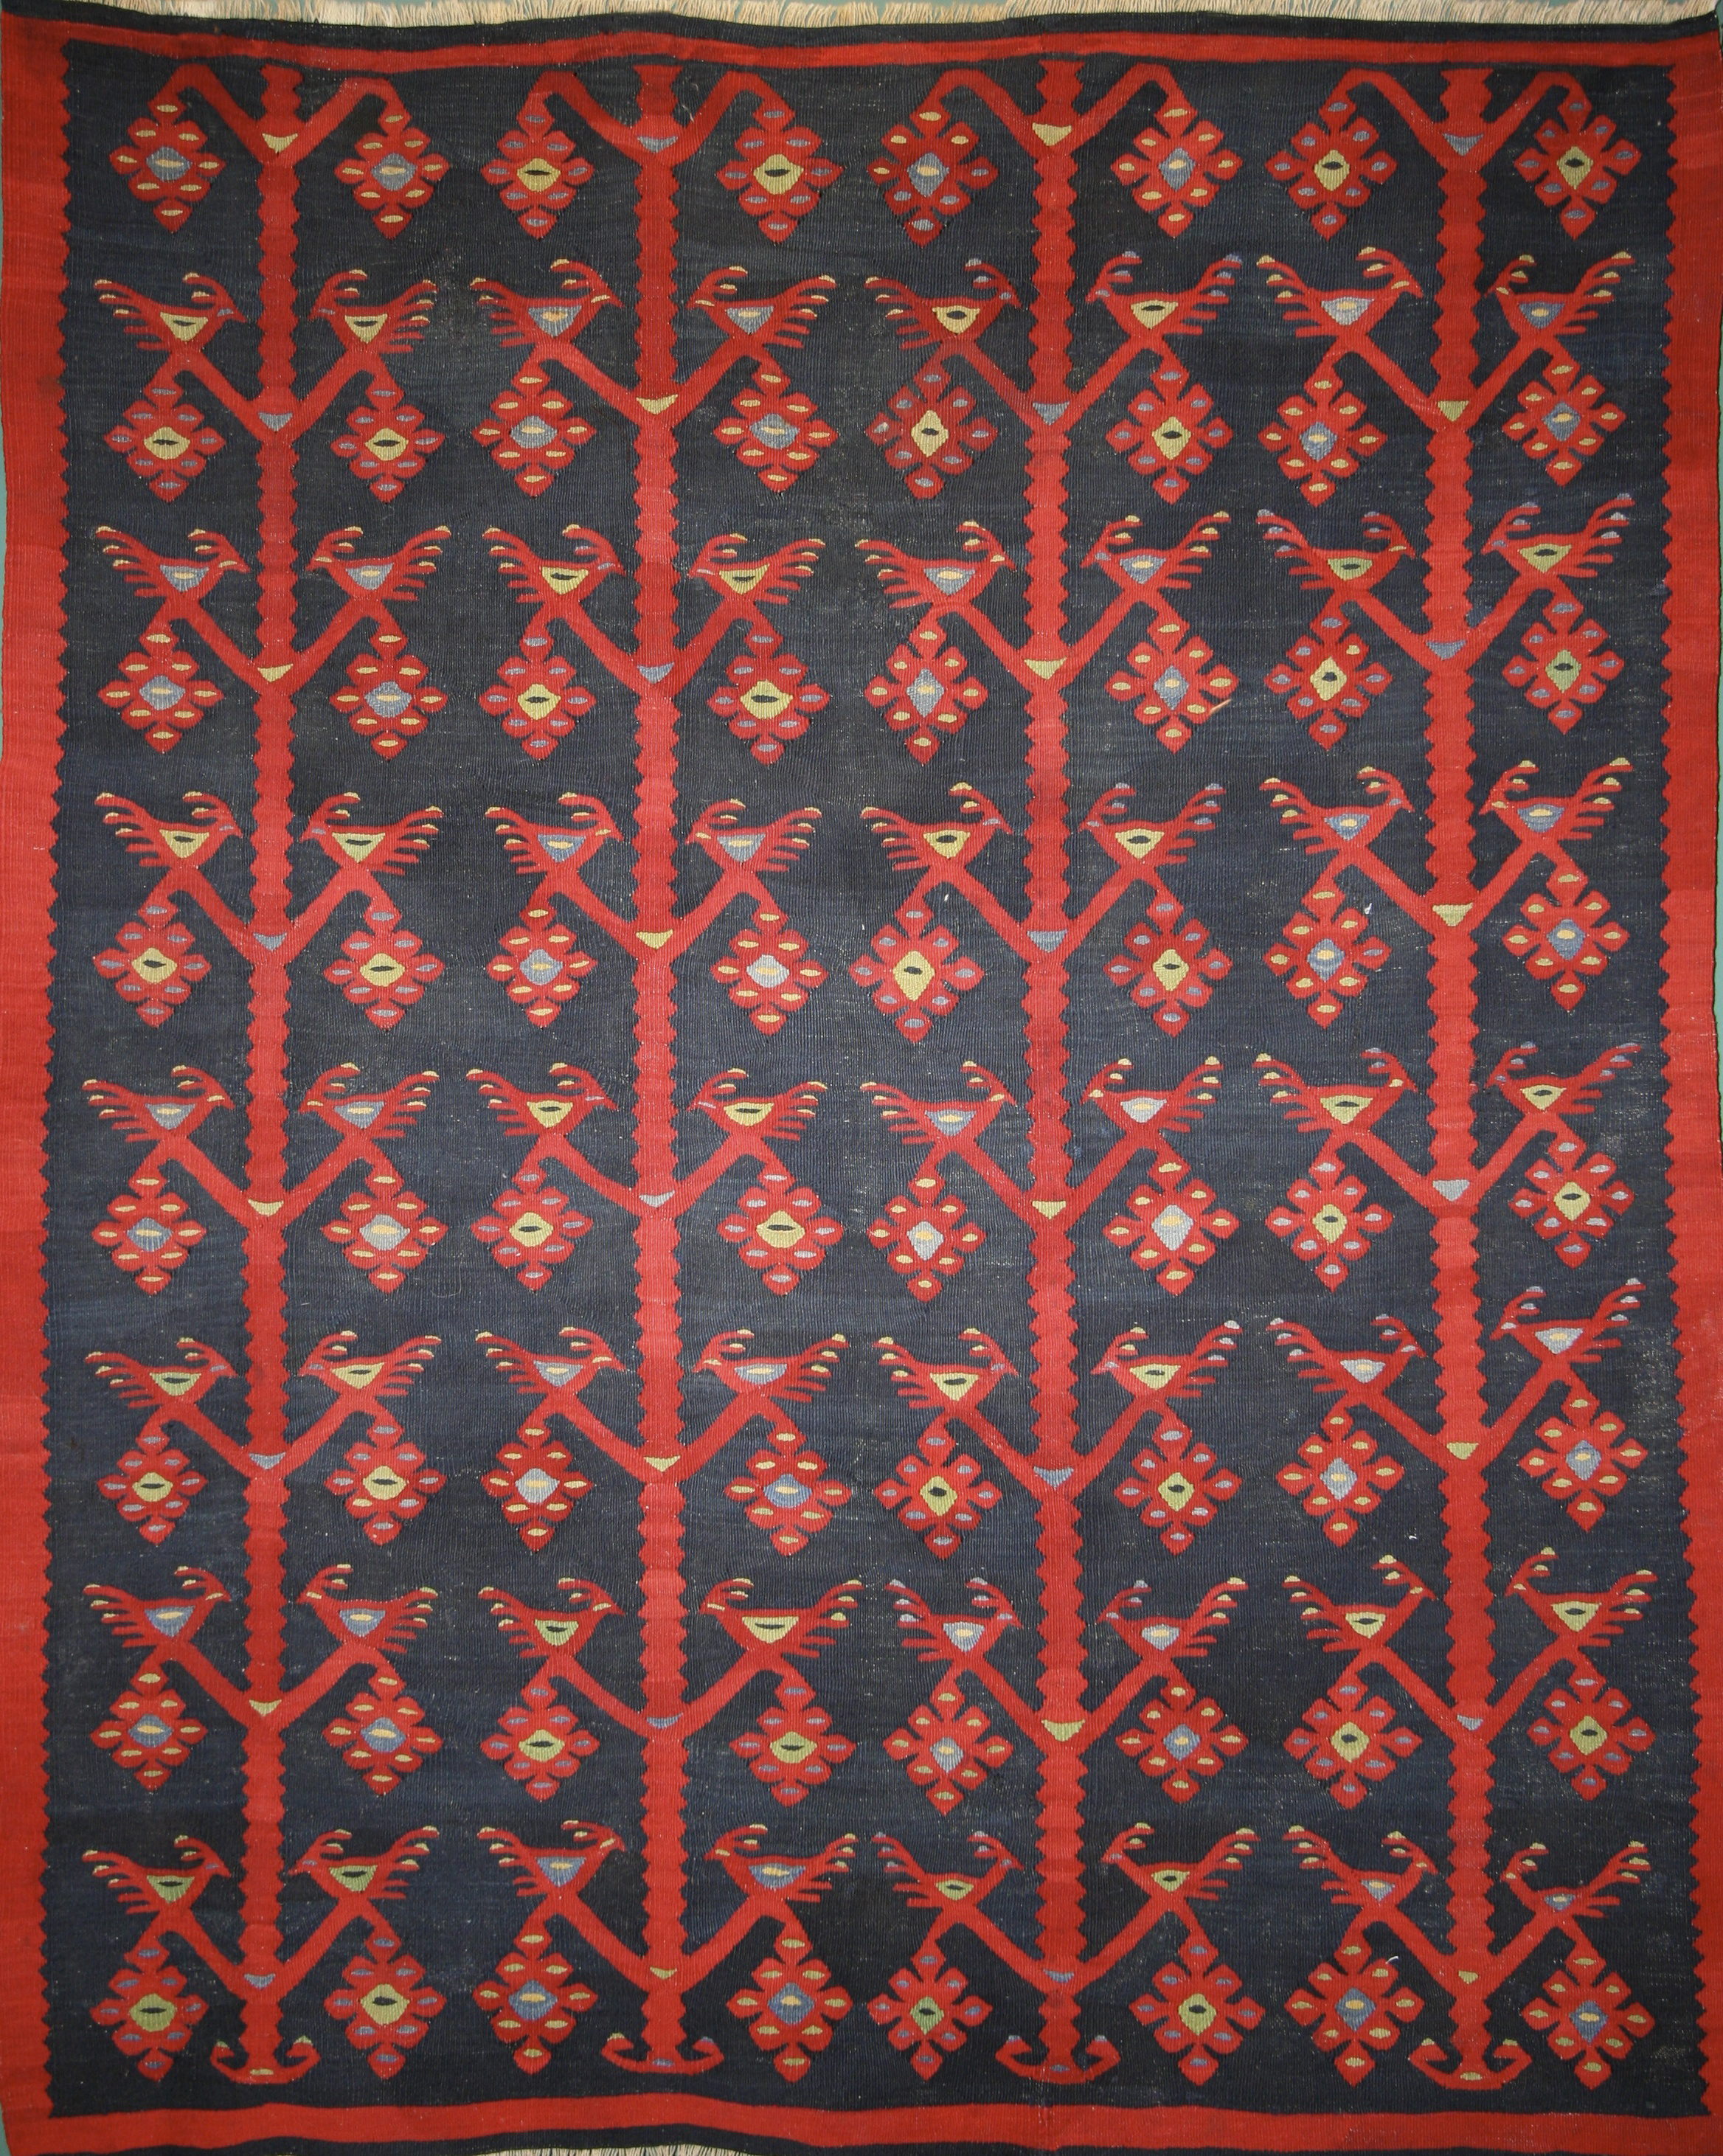 355 Antique Sarkay Kilim, Turkey, circa 1900, 3'11''x4'11